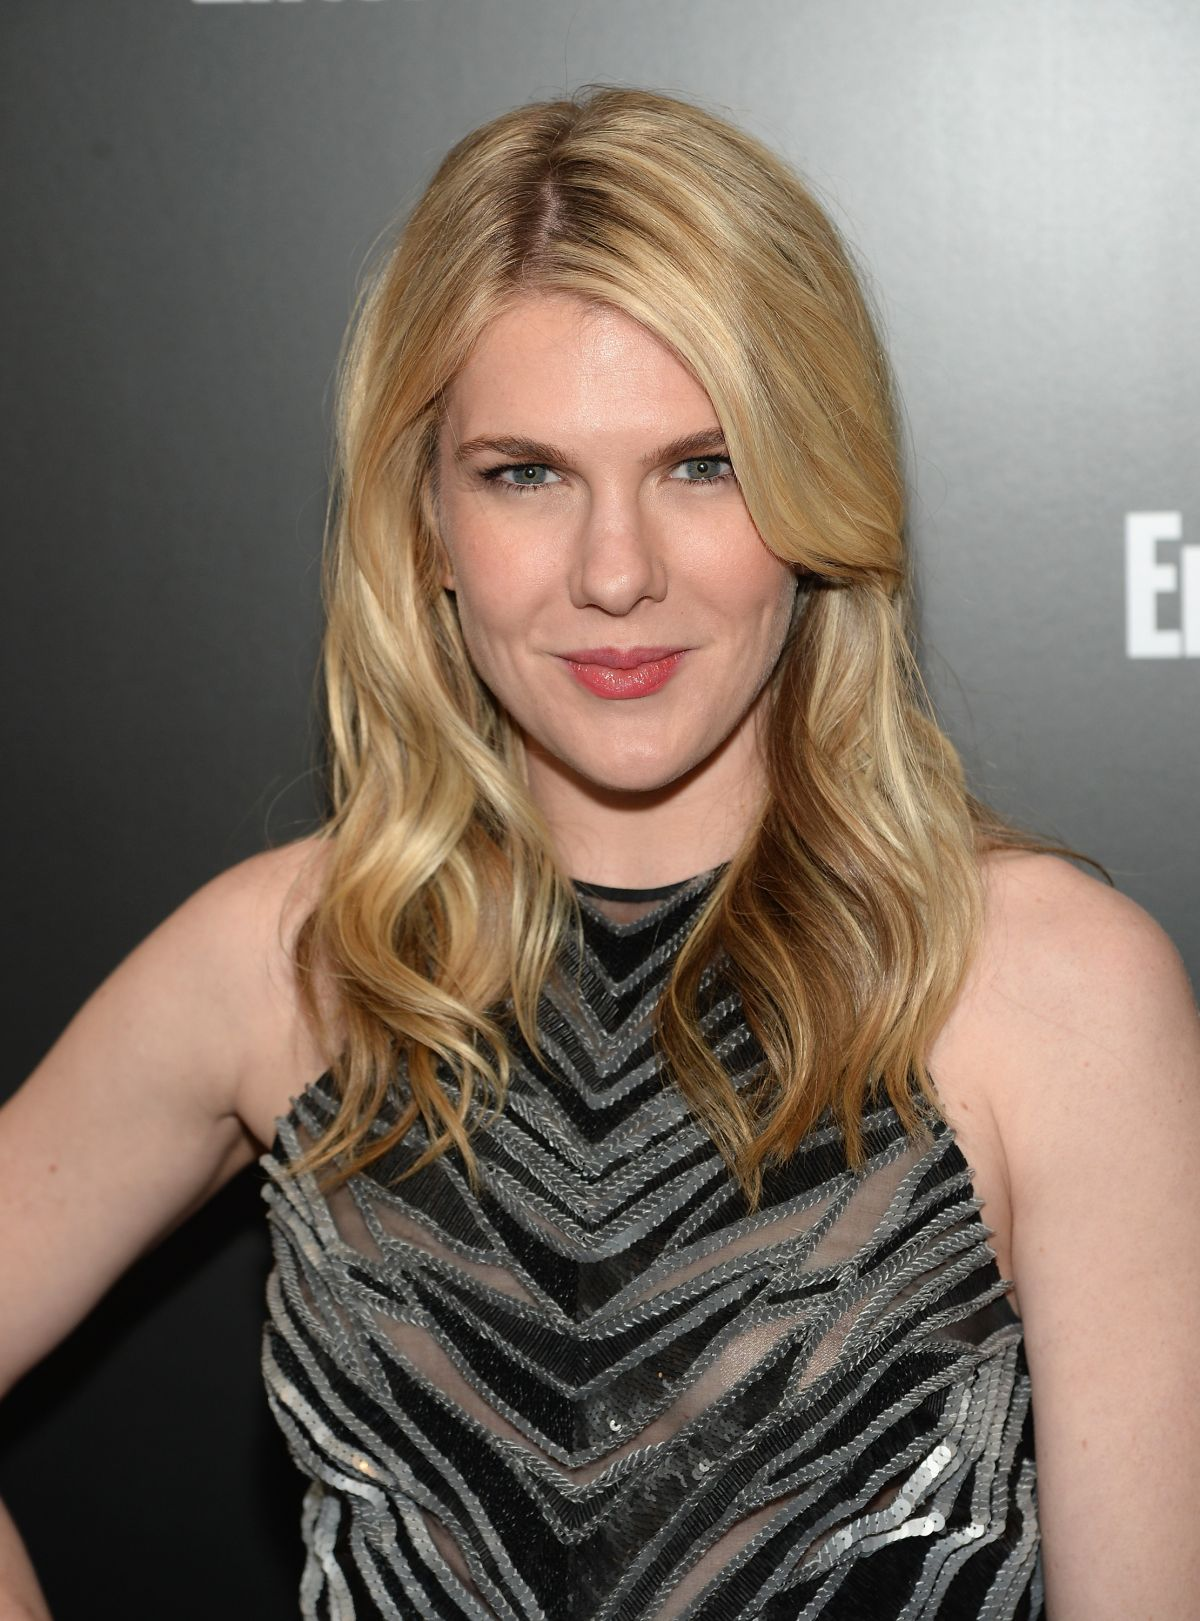 Lily Rabe earned a  million dollar salary, leaving the net worth at 2 million in 2017